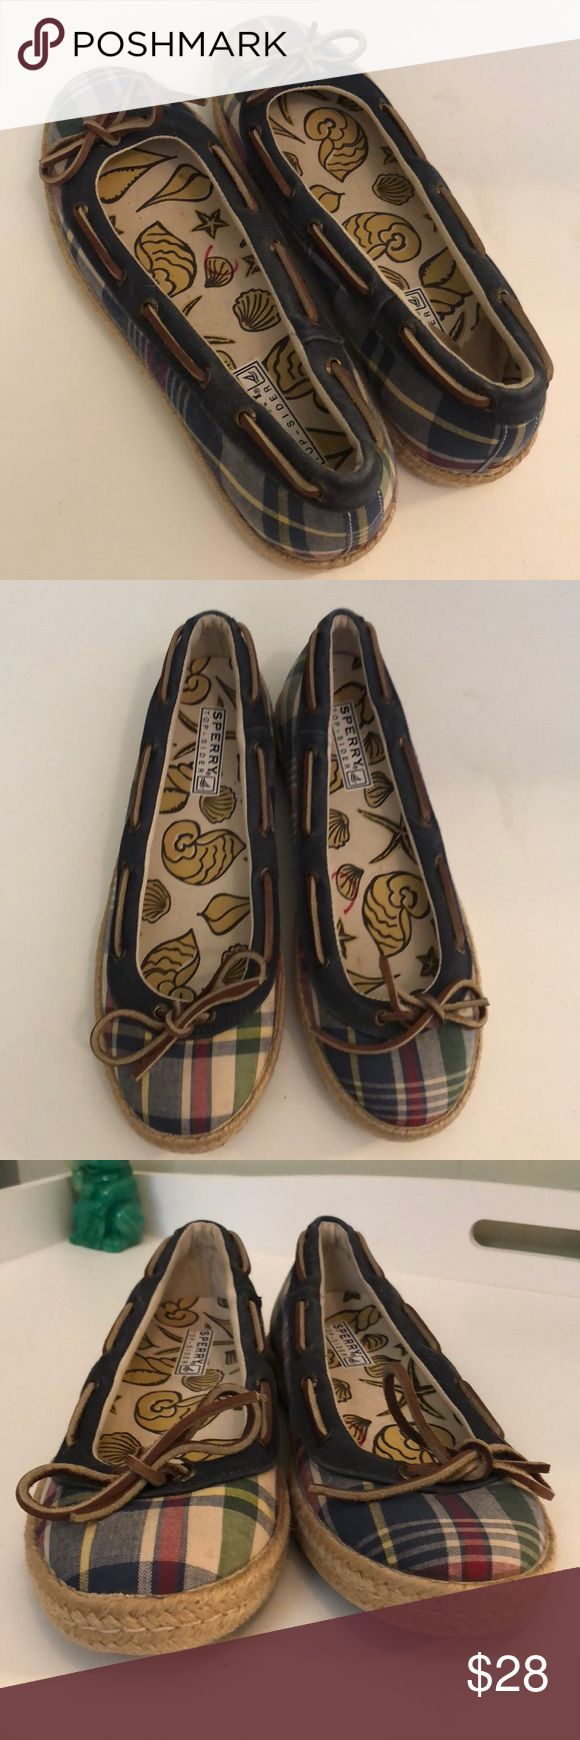 "SPERRY TOP-SIDER SLIP ON LOAFERS - Guc Sz 8 Super cute size 8 Sperry Topsider slip on's They are in good pre-loved condition and are ready to ship.  Super cute but may need a little cleaning as they have been sitting.  As you see there isn't a ton of wear , but they are not mInt. Leather bow on the top &  seashell inner lining. They are the typical Sperry plaid colors. All sales are final so please ask questions, if needed.   These are ""estate fresh"".  Thank you. Sperry Top-Sider Shoes Flats…"